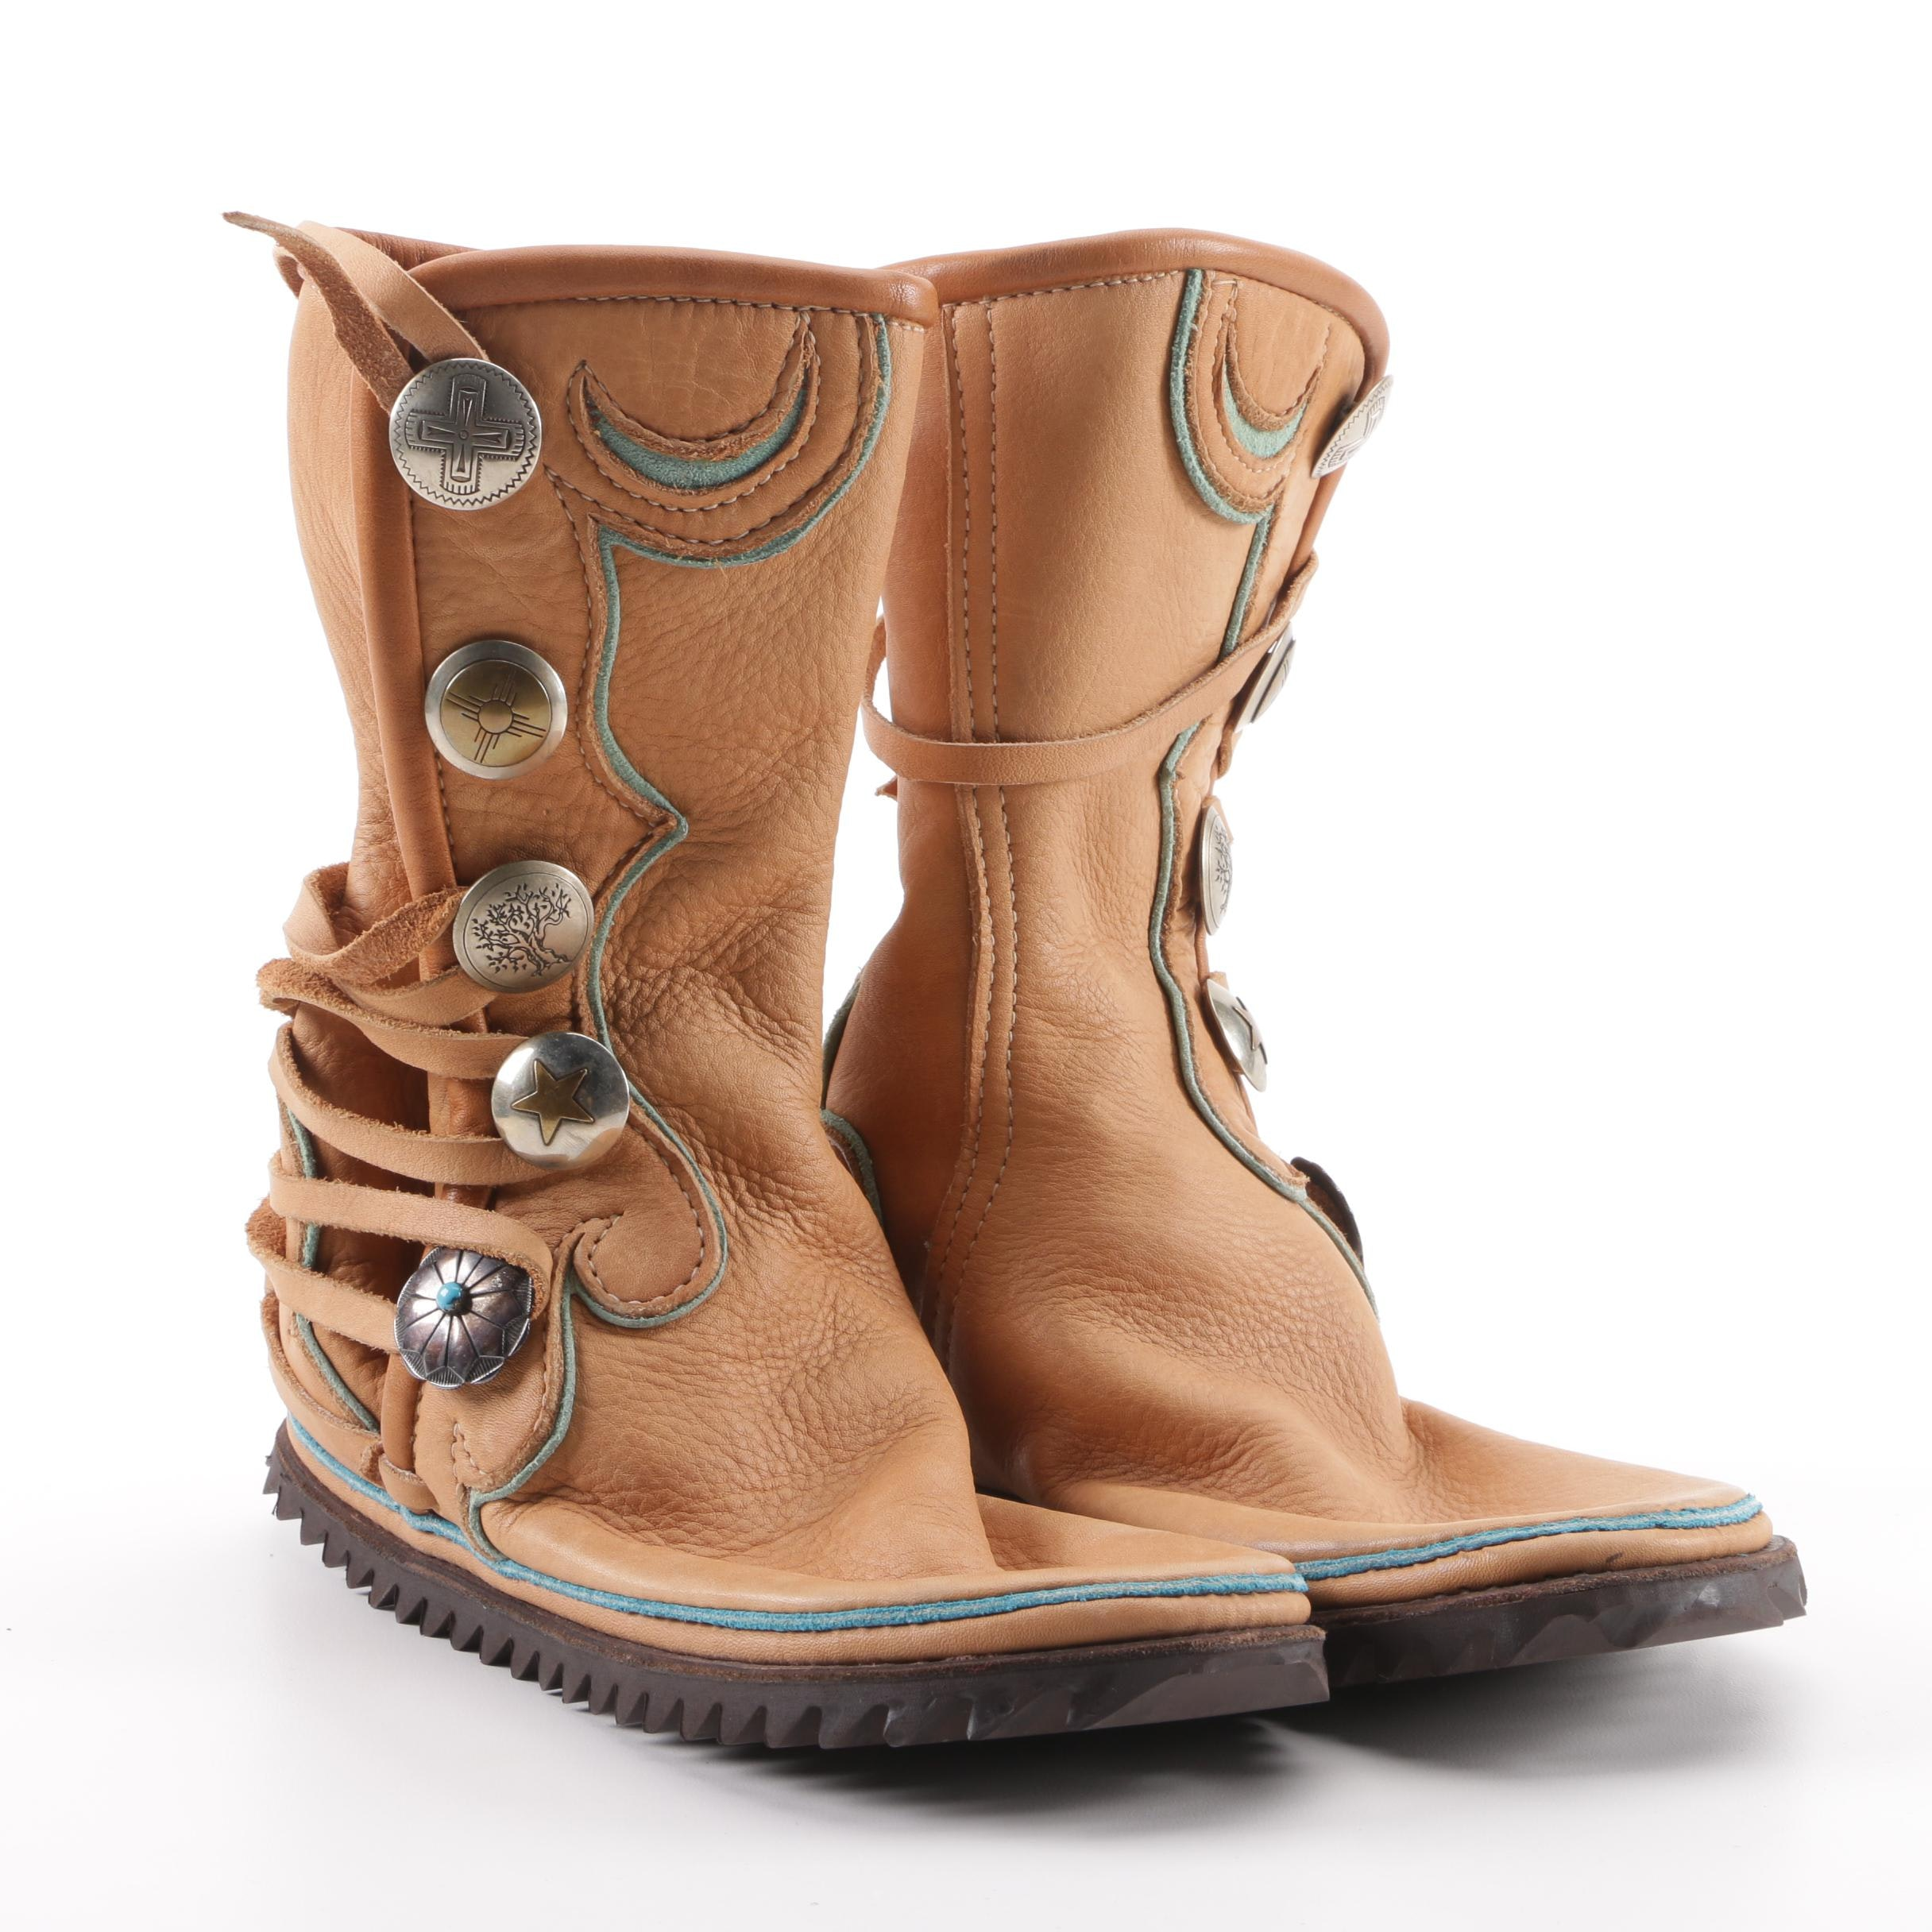 Women's Southwestern-Style Leather Concho Boots with Rubber Outsole